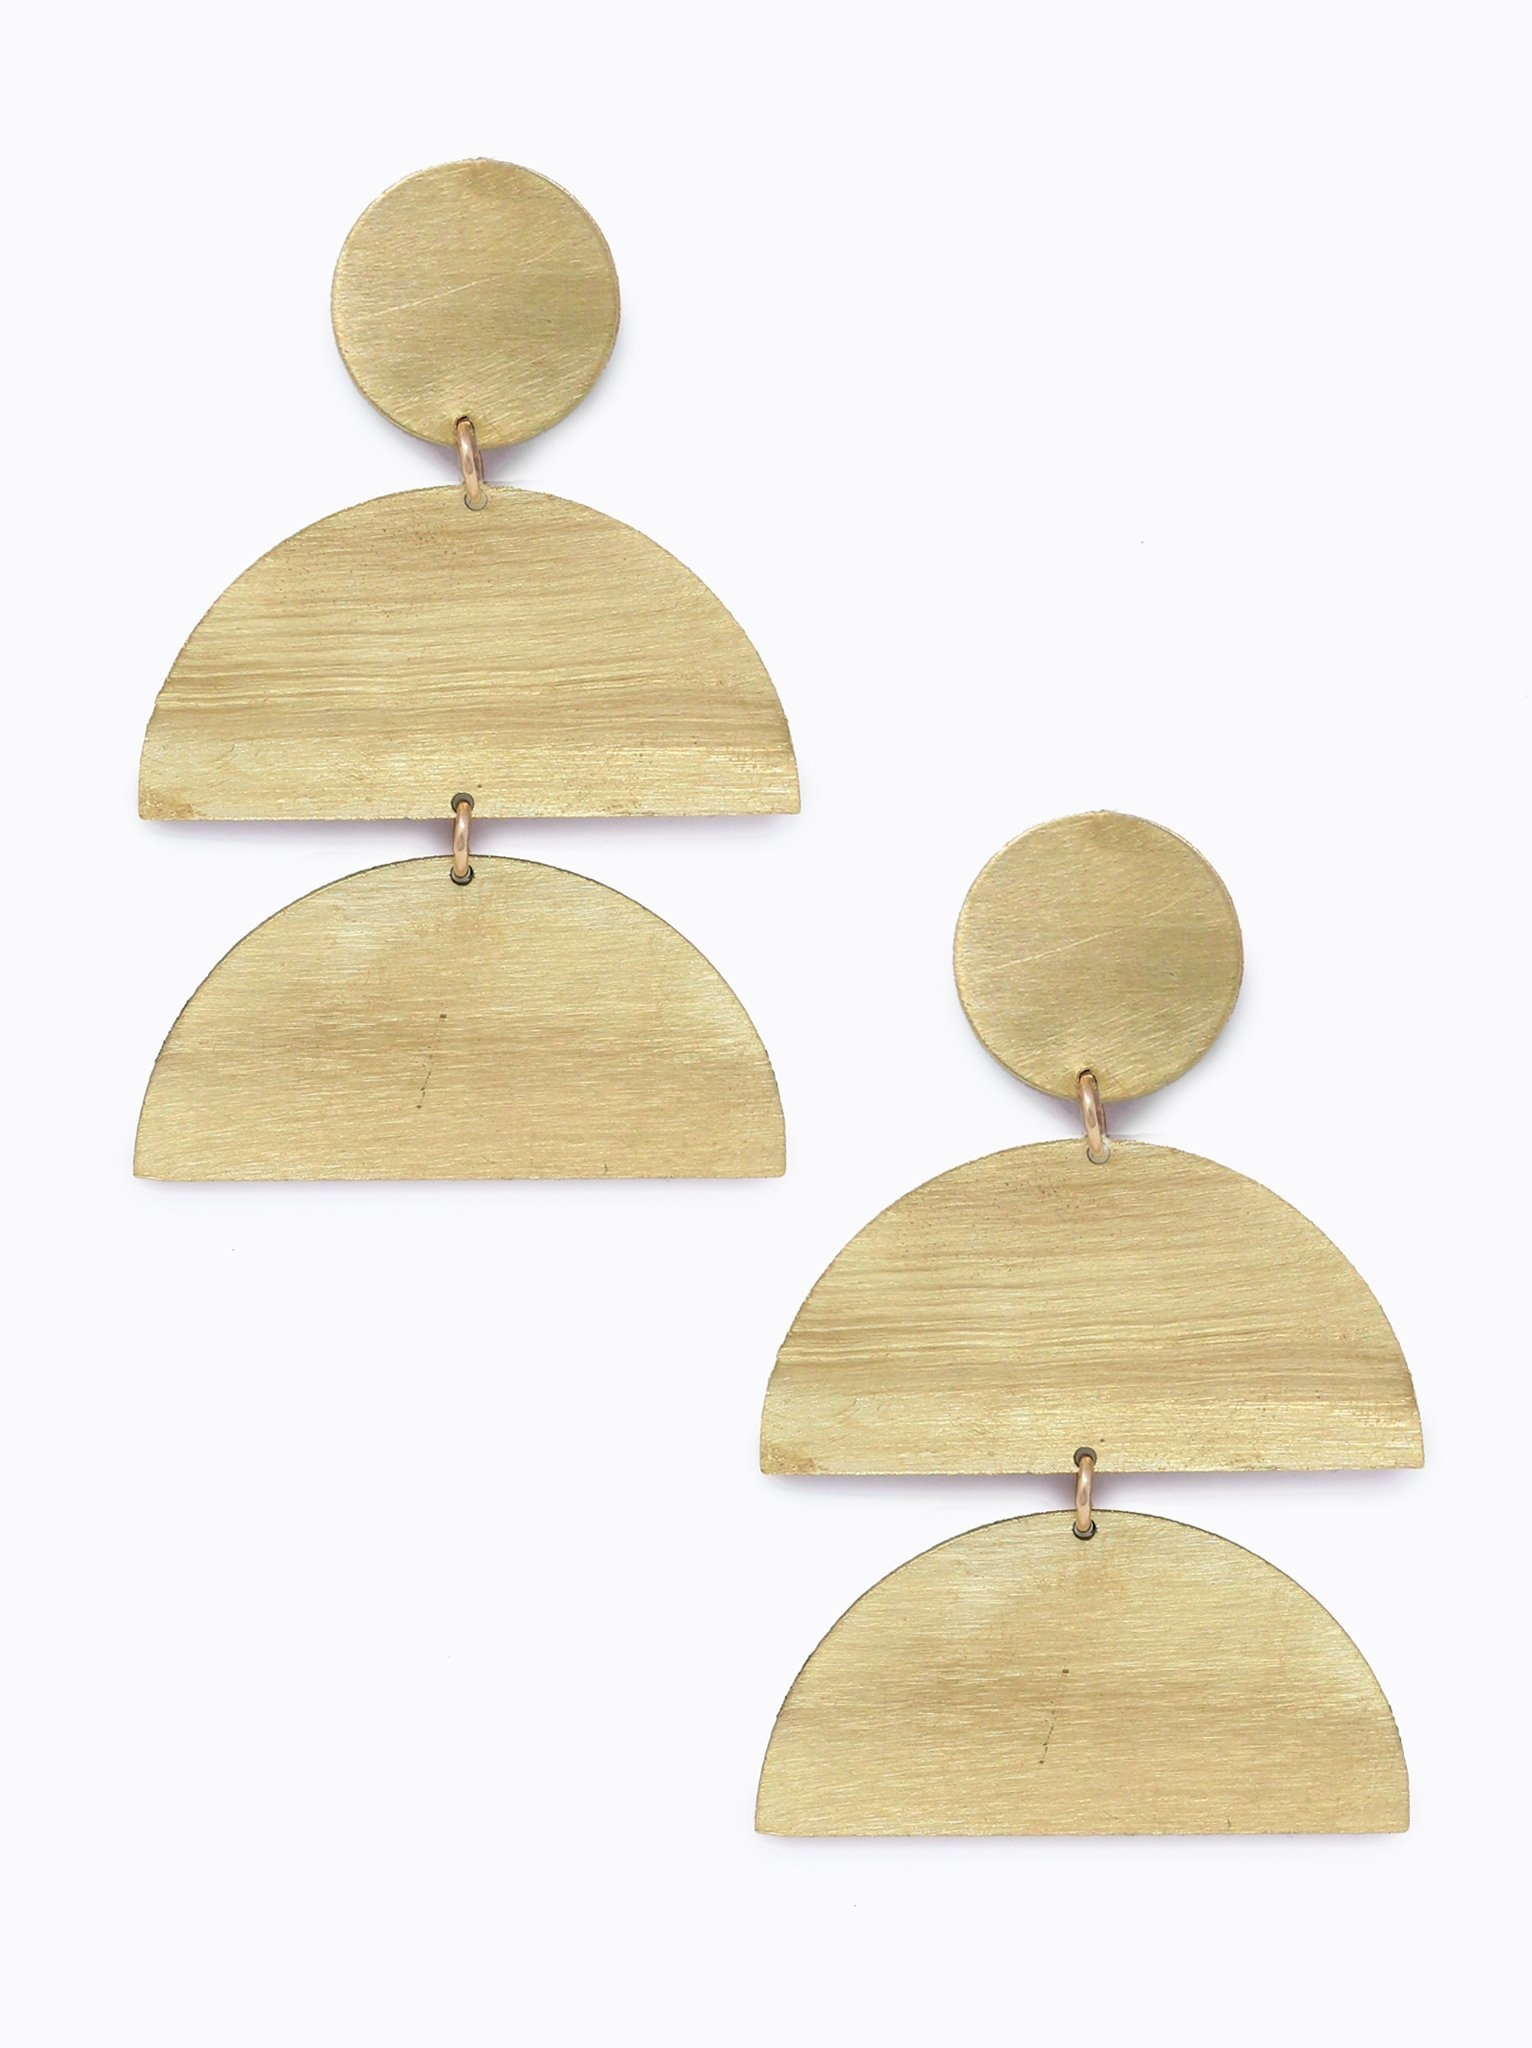 ABLE Brass Silhouette Earrings